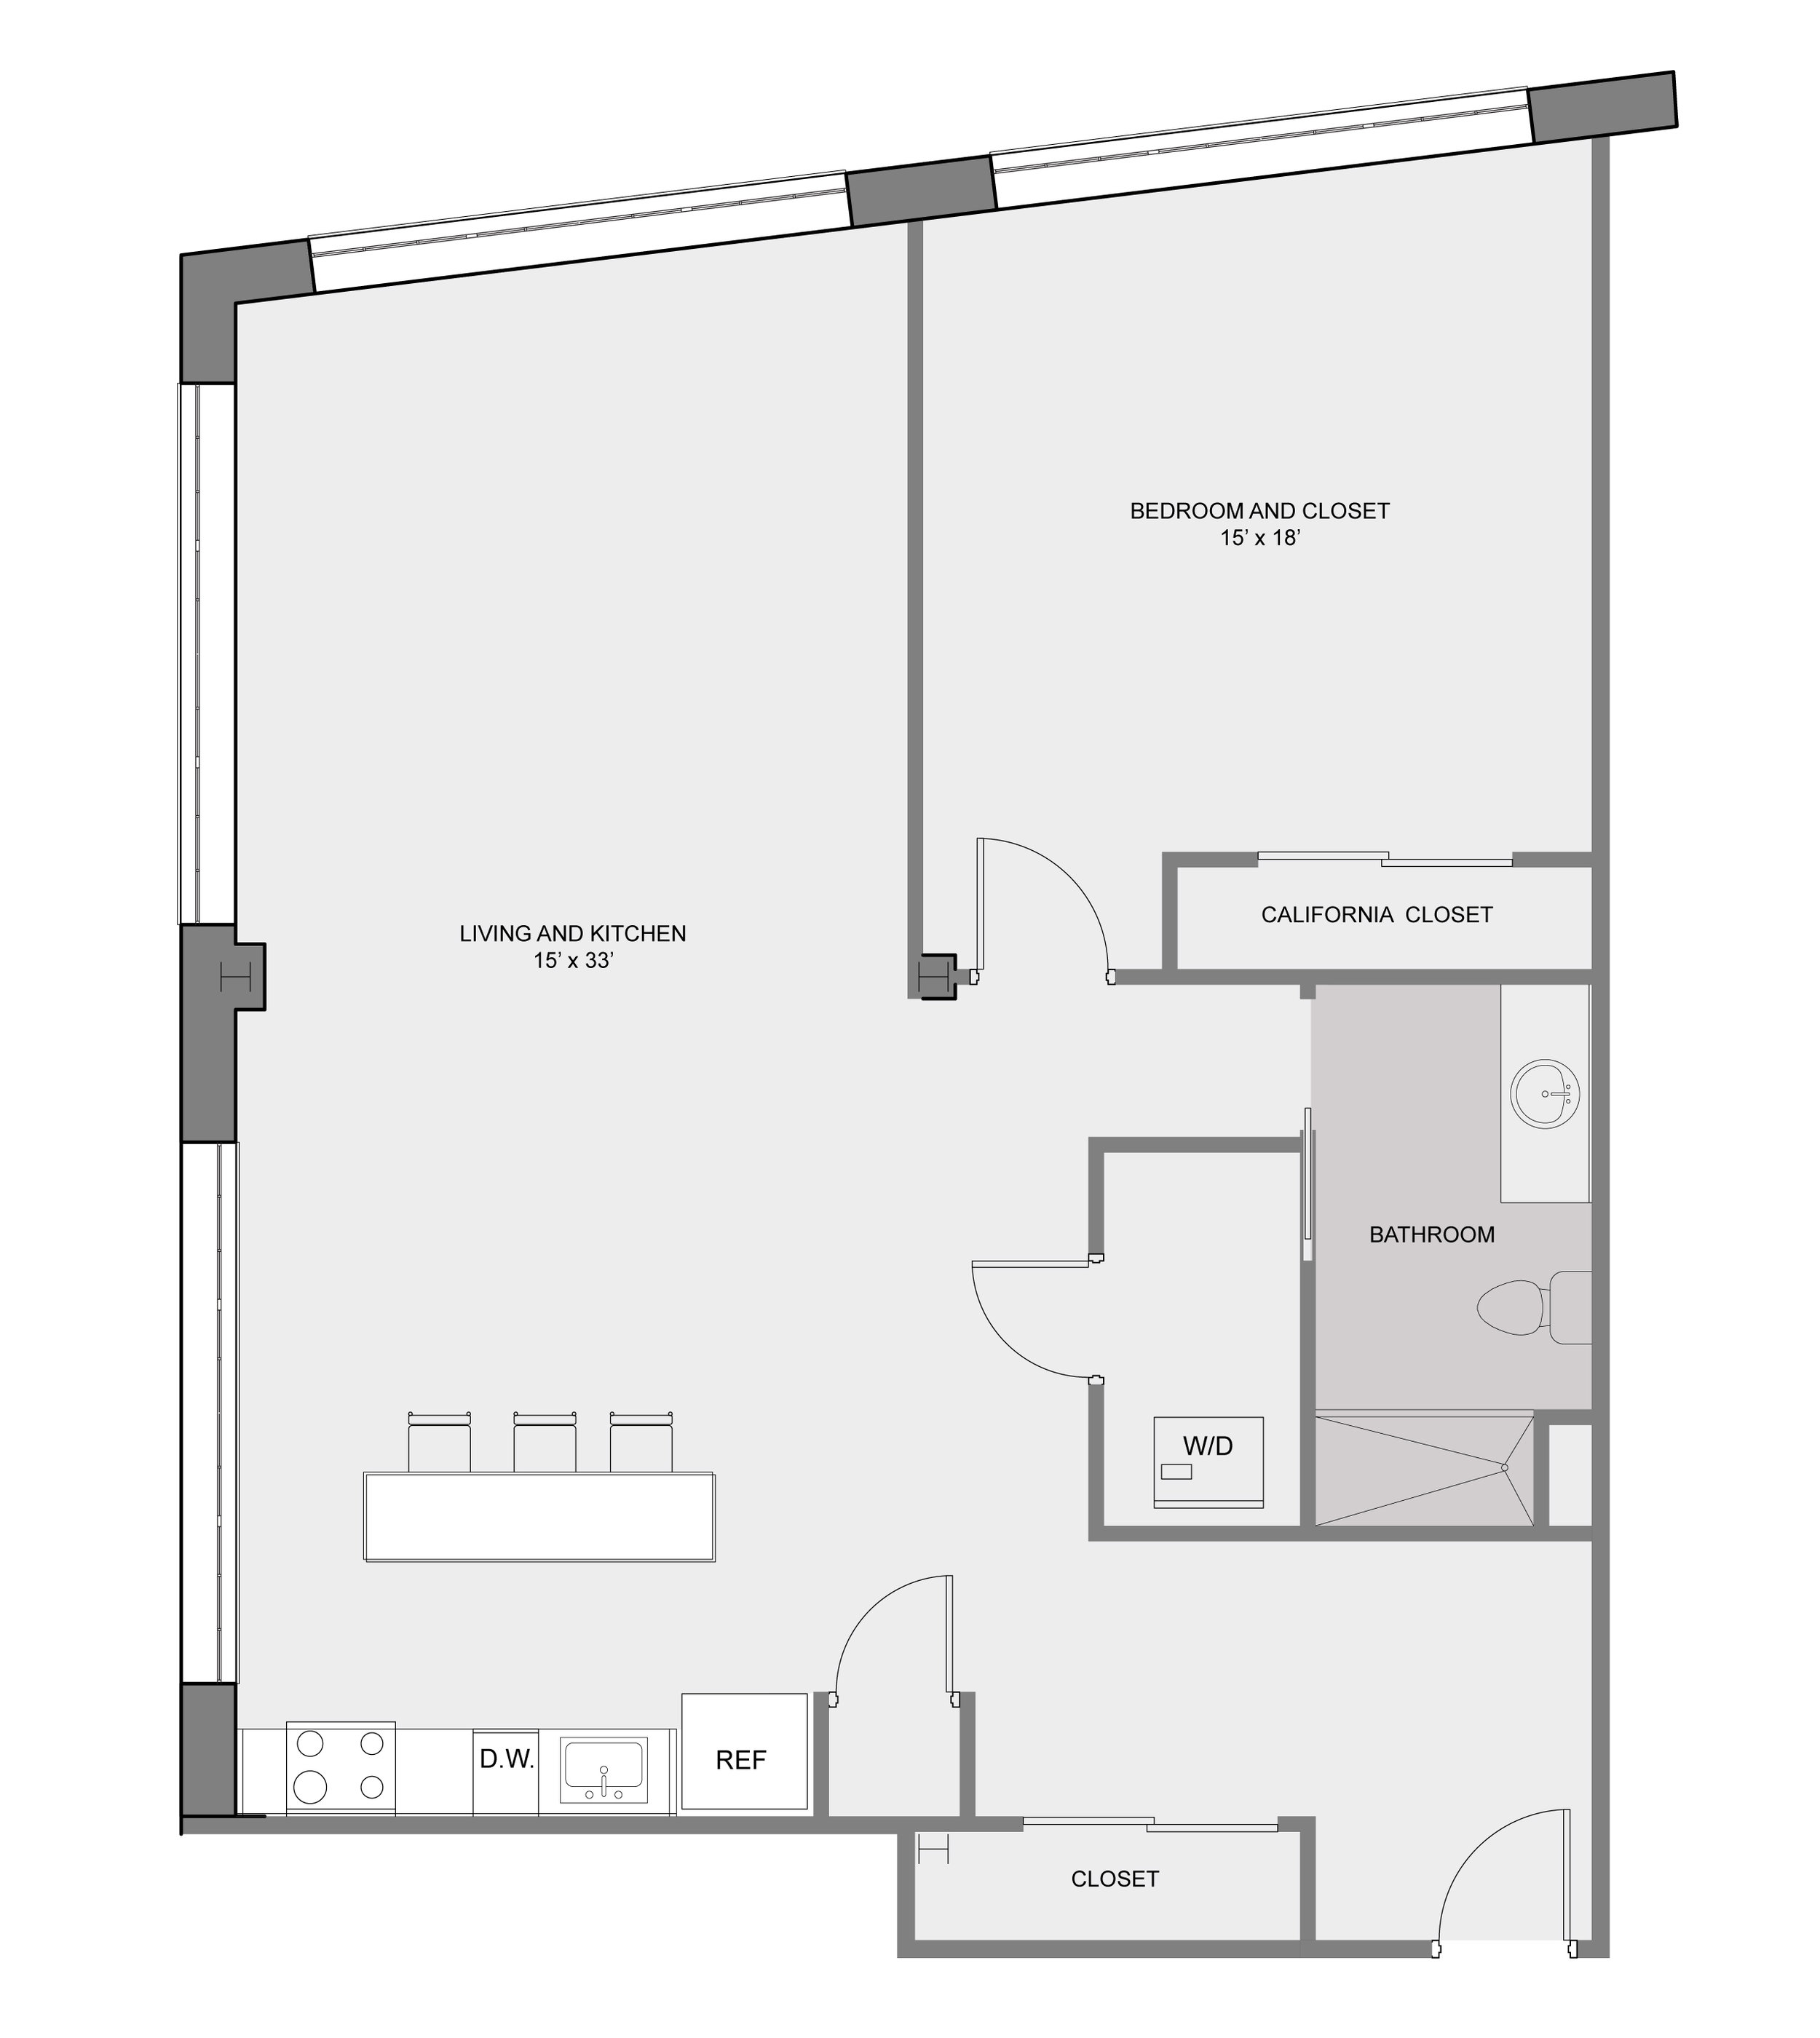 Ansco_L - 2 Bed.jpg